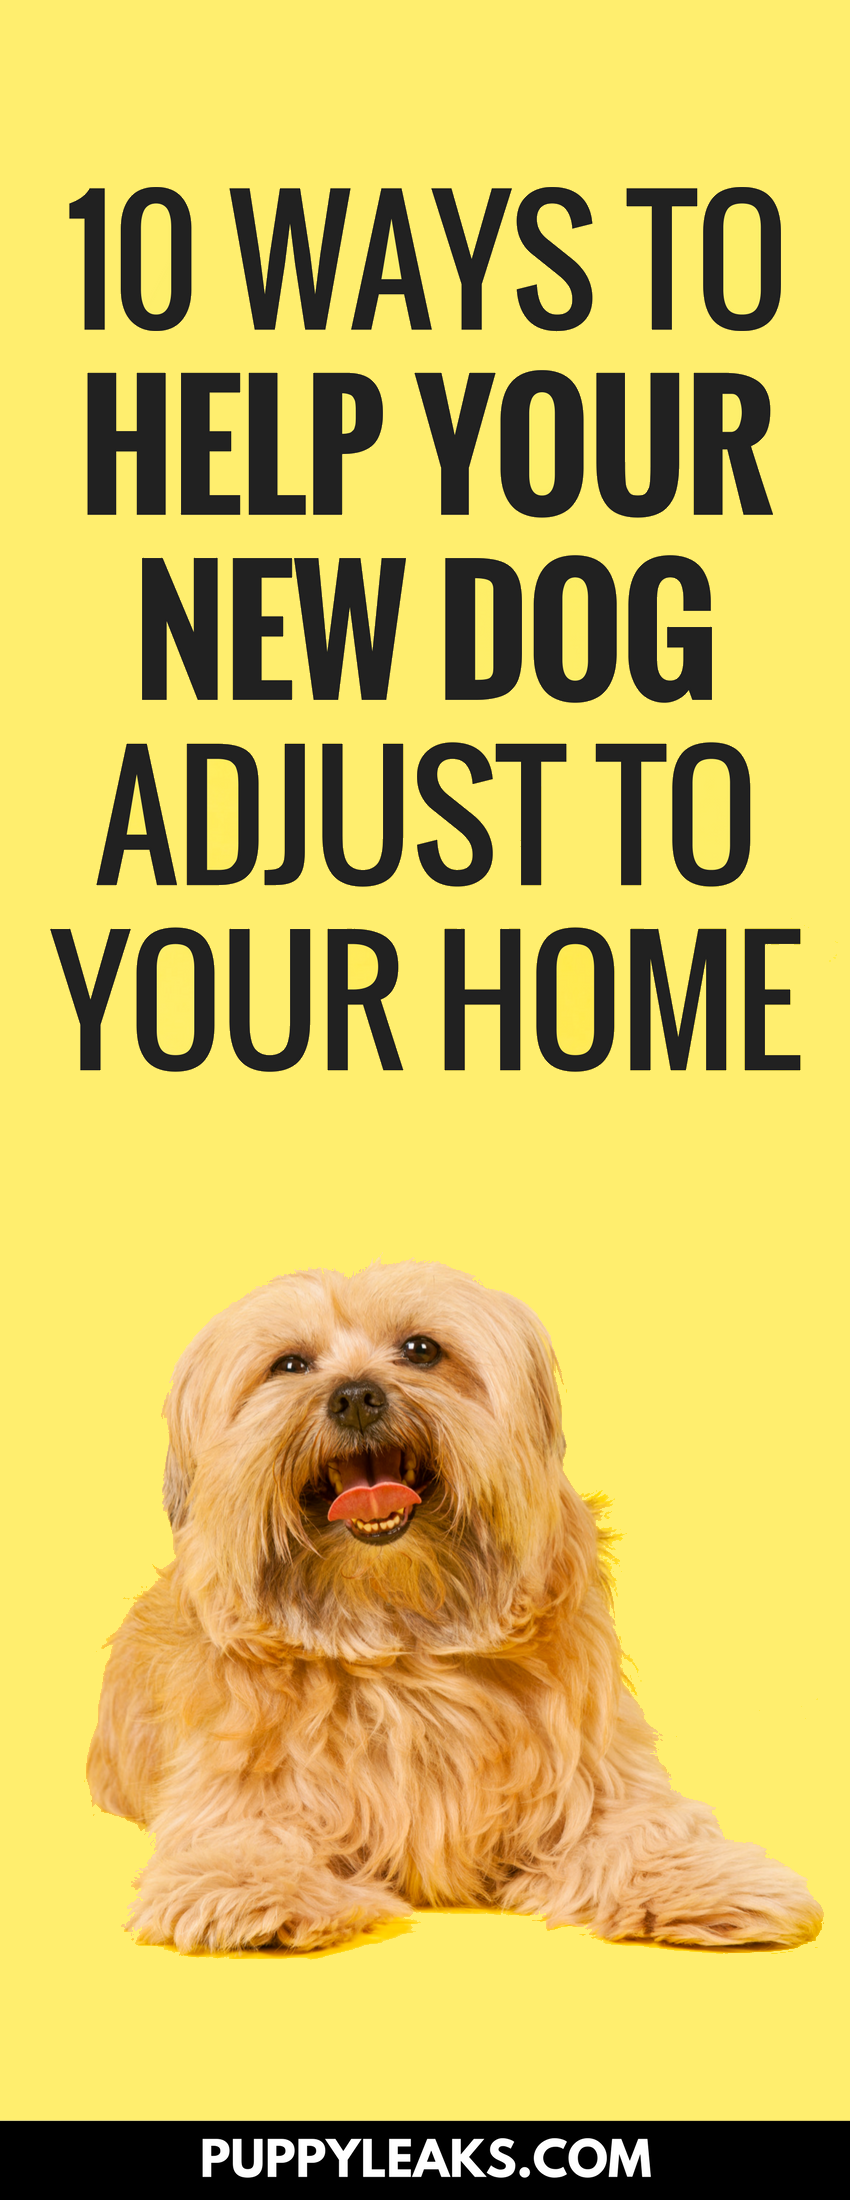 Whether you're getting a new puppy or adopting an older dog you can expect your new four legged family member to take a few days to settle in. These tips will help your new dog adjust to your home, and they'll help start you off on the right foot when it comes to forming a strong bond with your dog. #dogs #dogtips #puppies #puppytips #dogcare #dogadvice